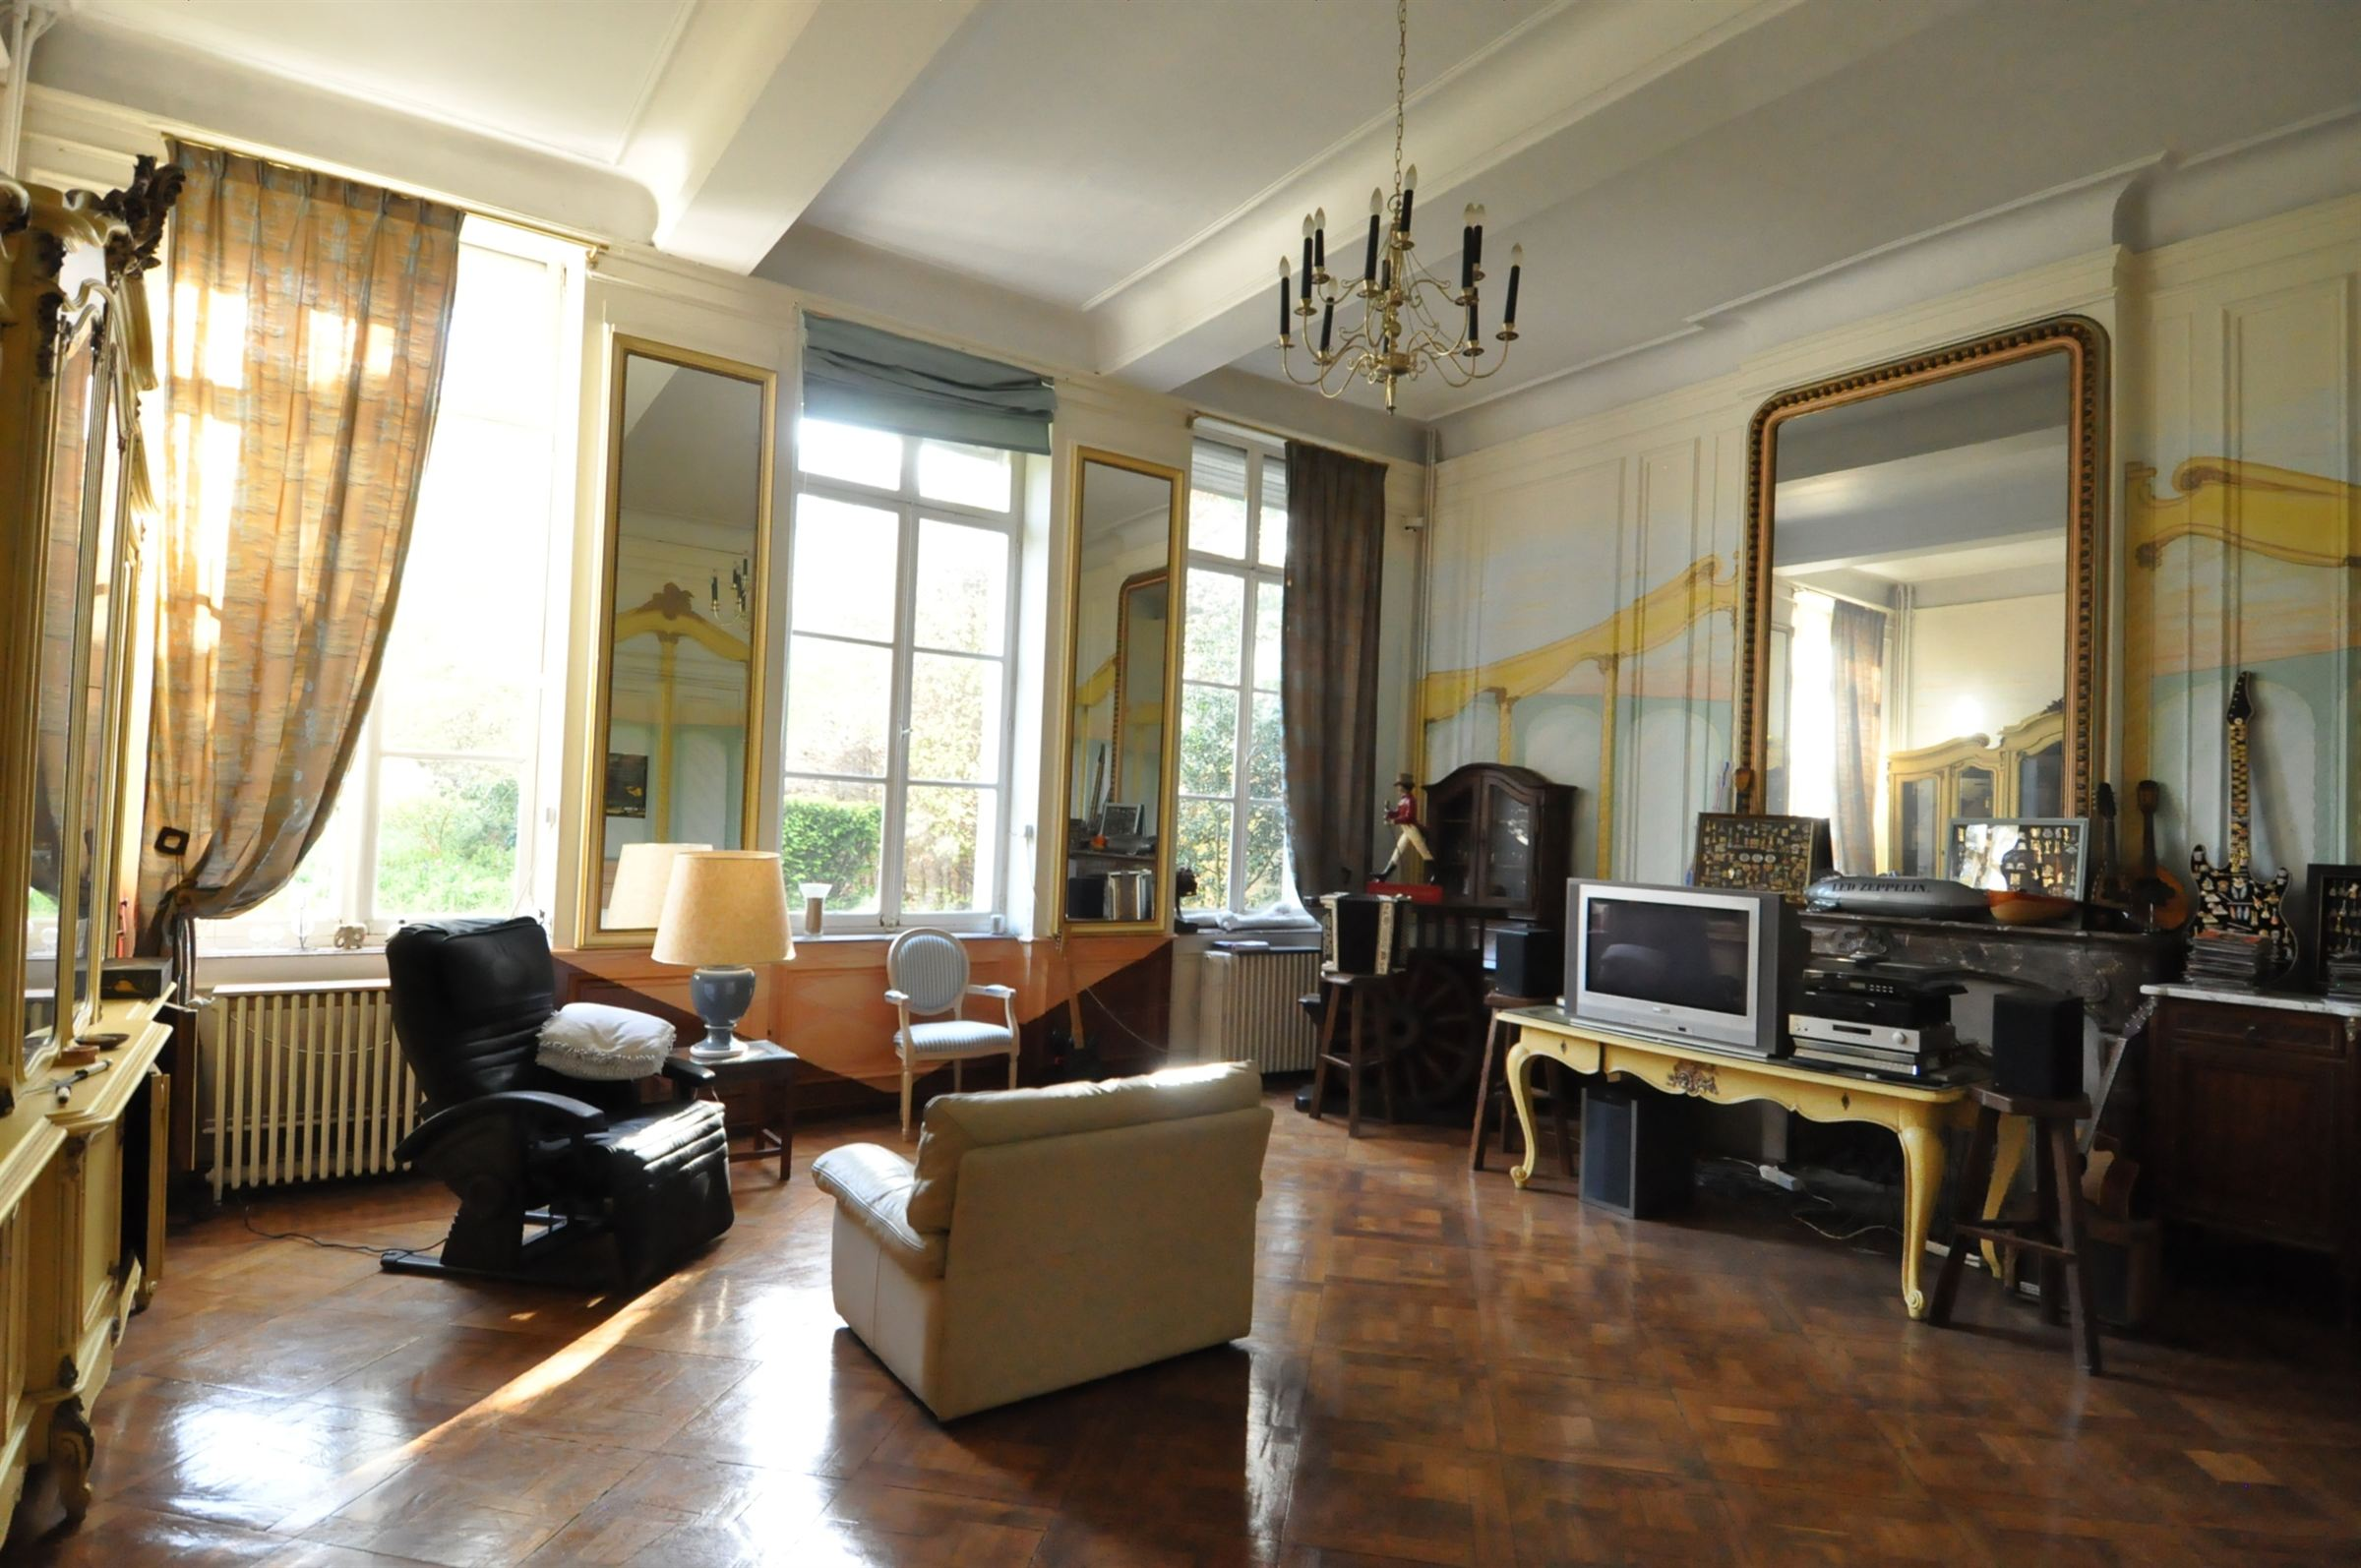 sales property at CENTRAL DOUAI, 1800sqm Private Mansion.